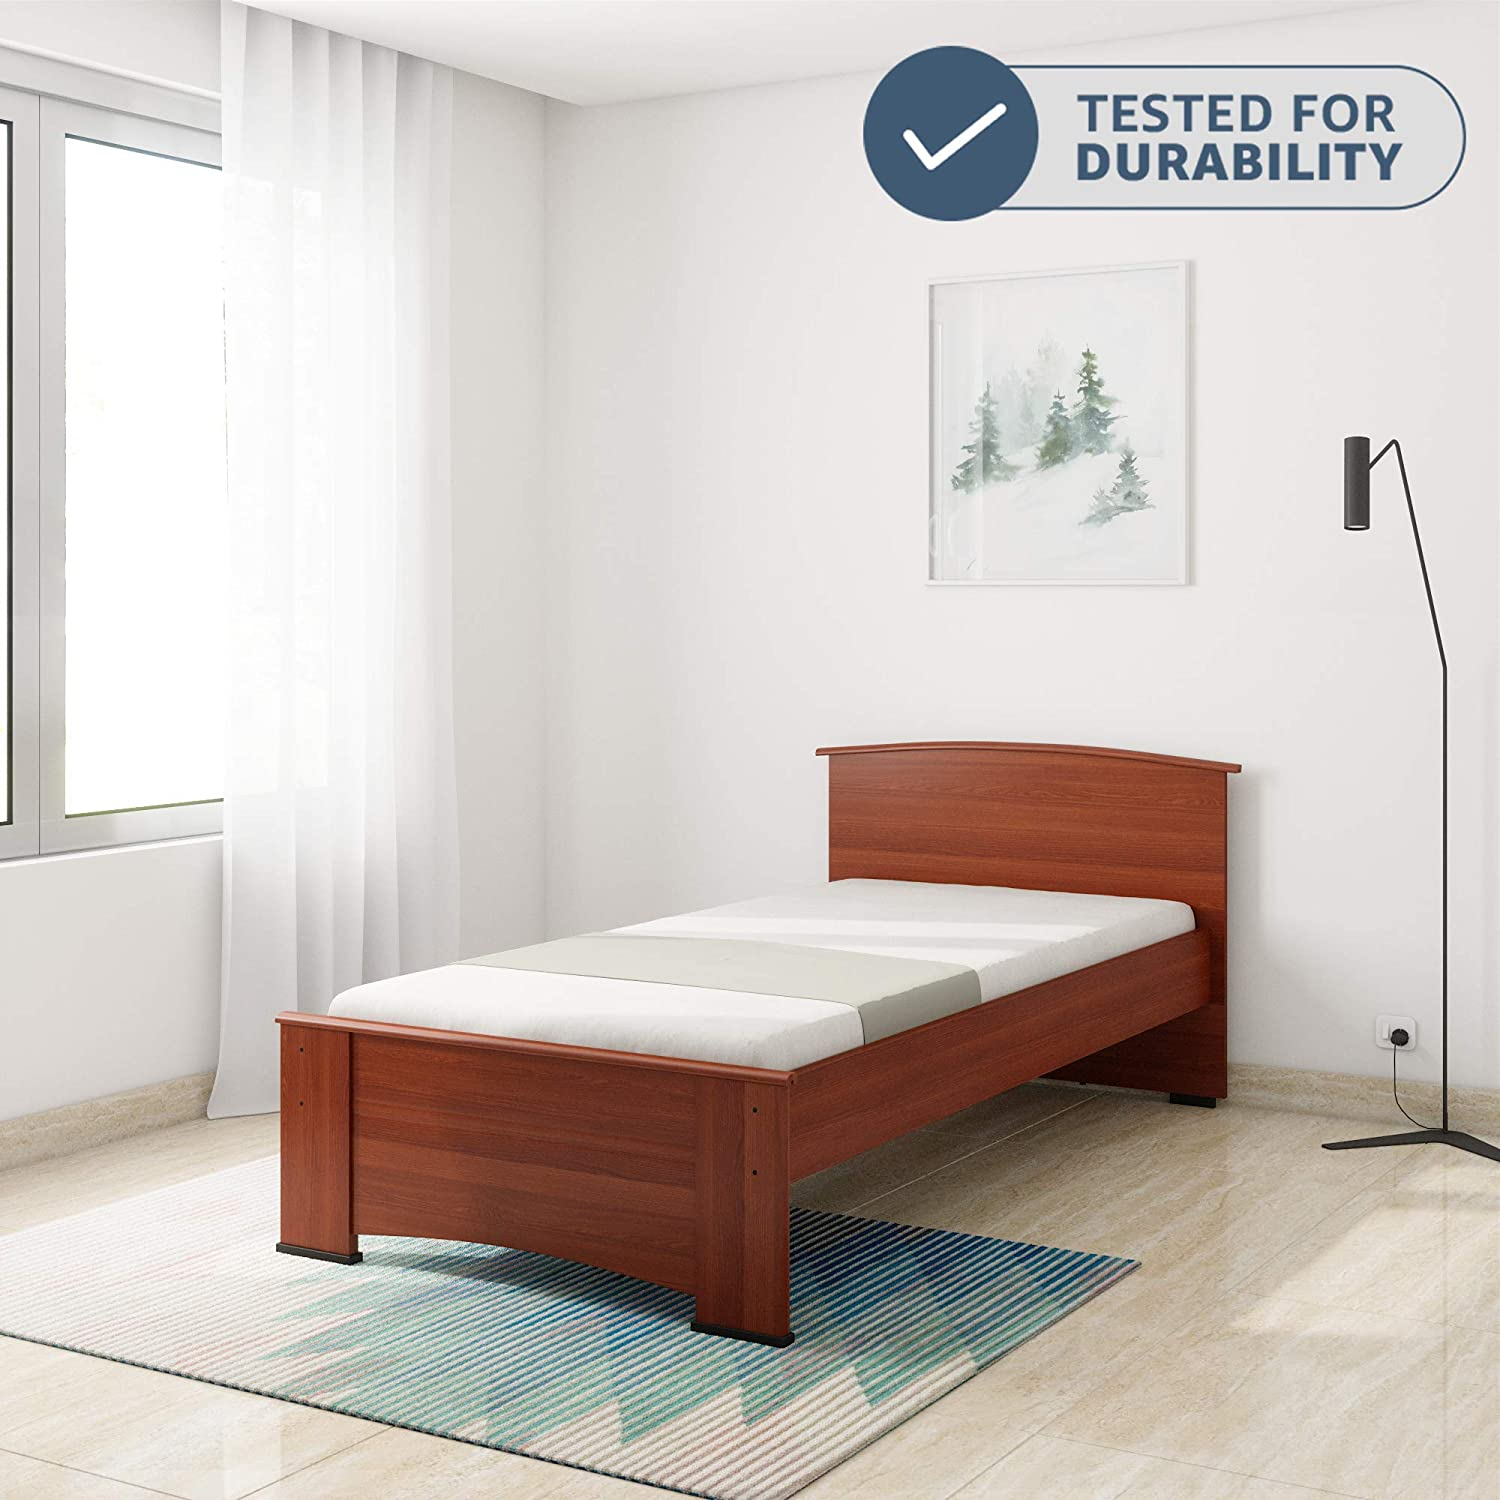 Revival Stylish Single Bed - Without Mattress